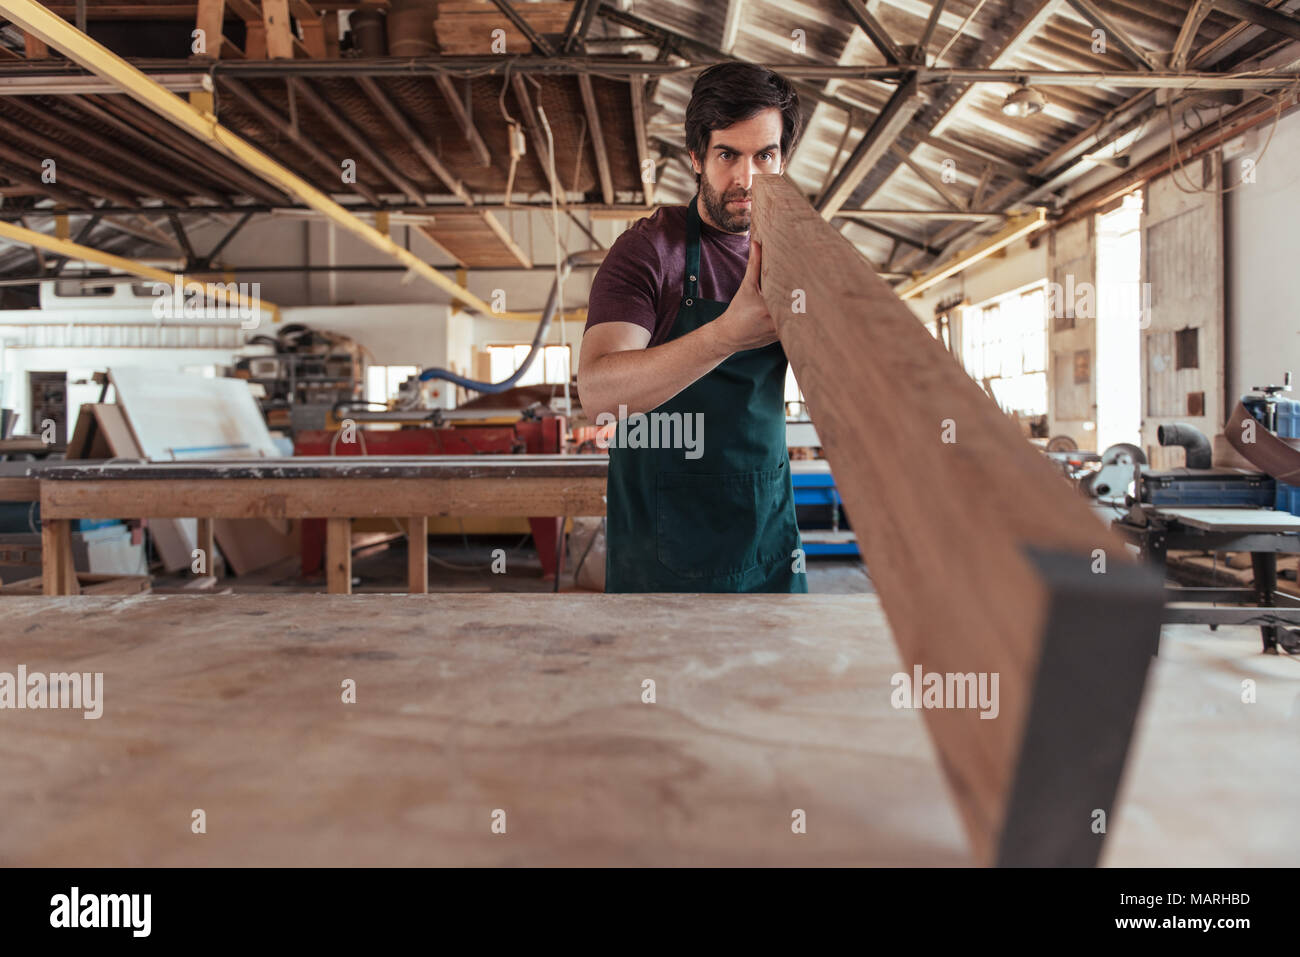 Woodworker skillfully inspecting a wooden plank in his workshop - Stock Image